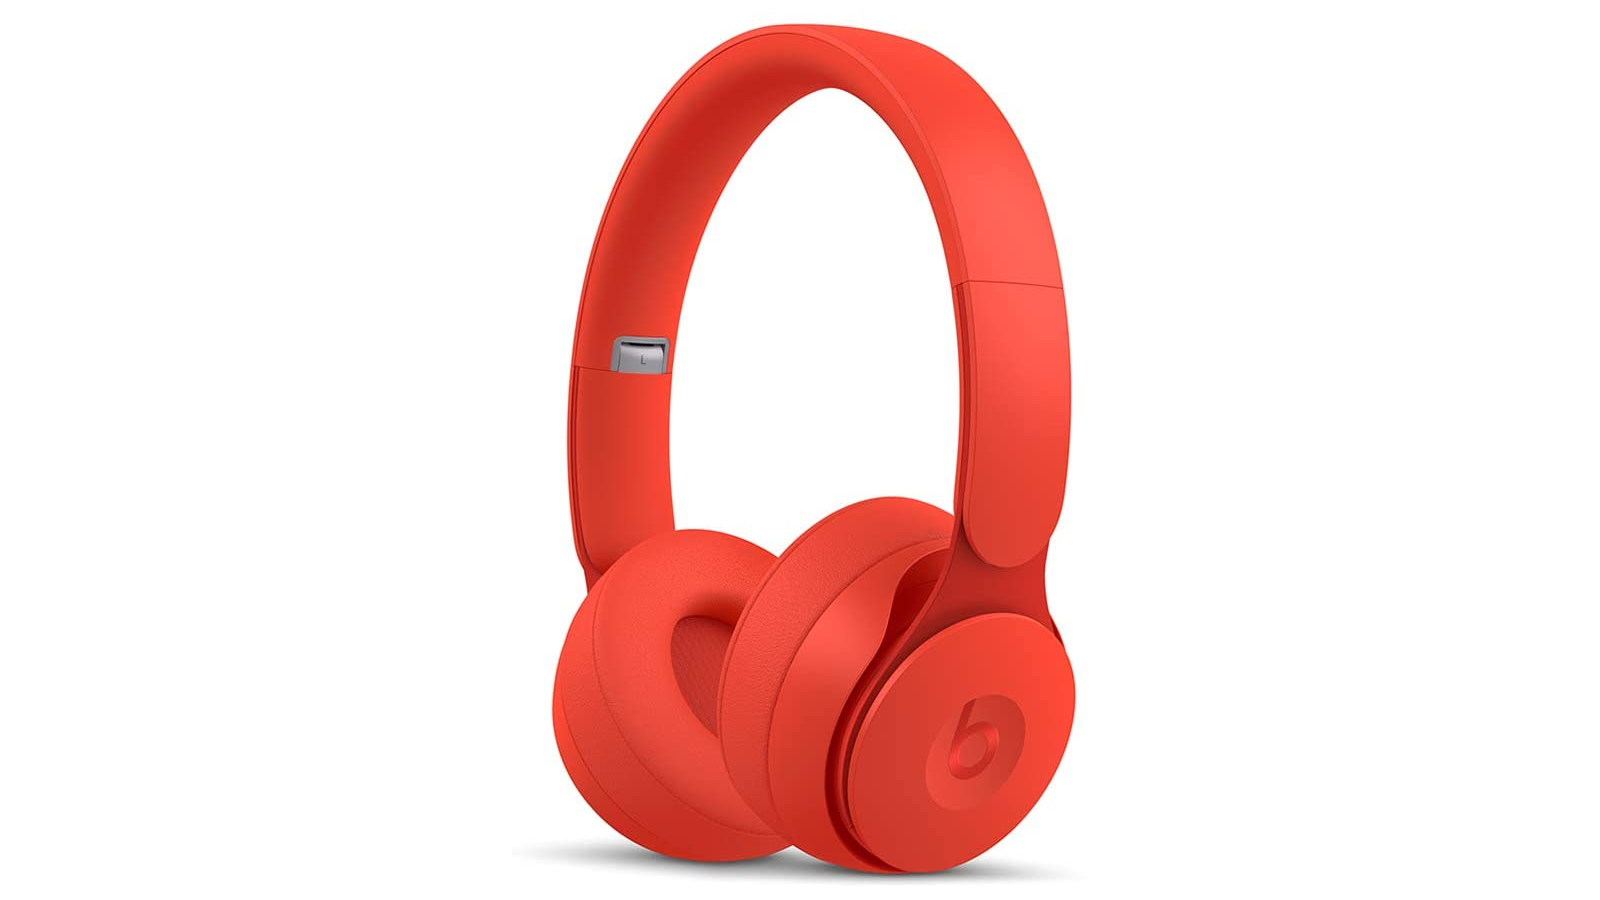 A picture of the Beats Solo Pro headphones.